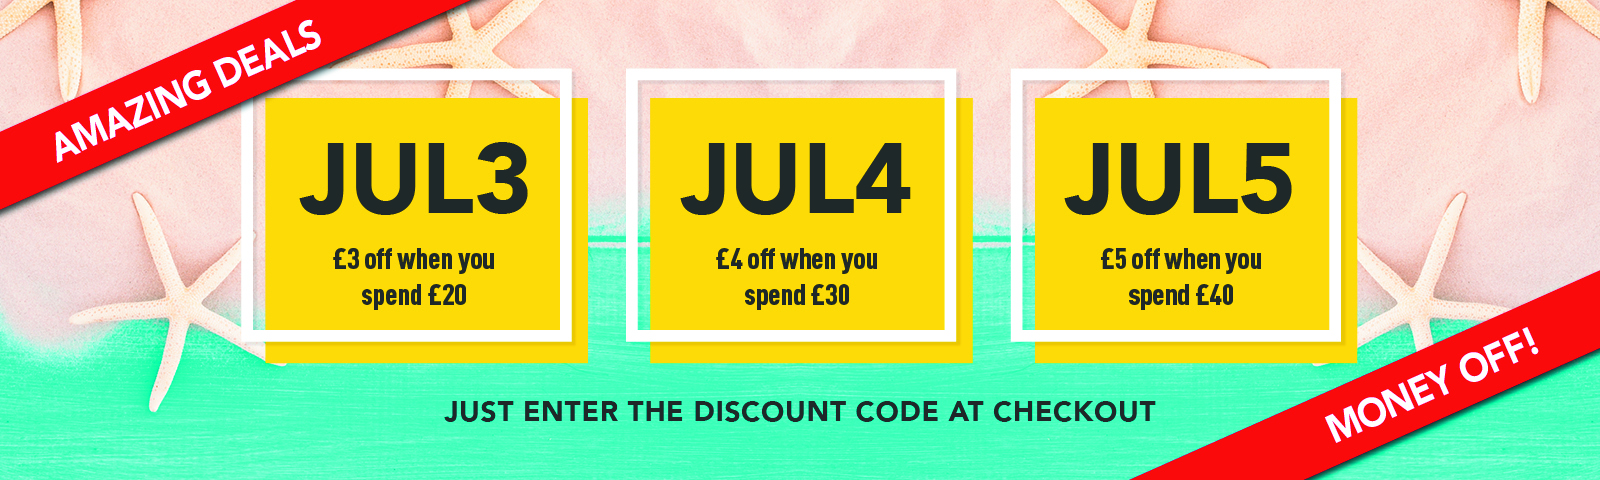 Save up to £5 this week